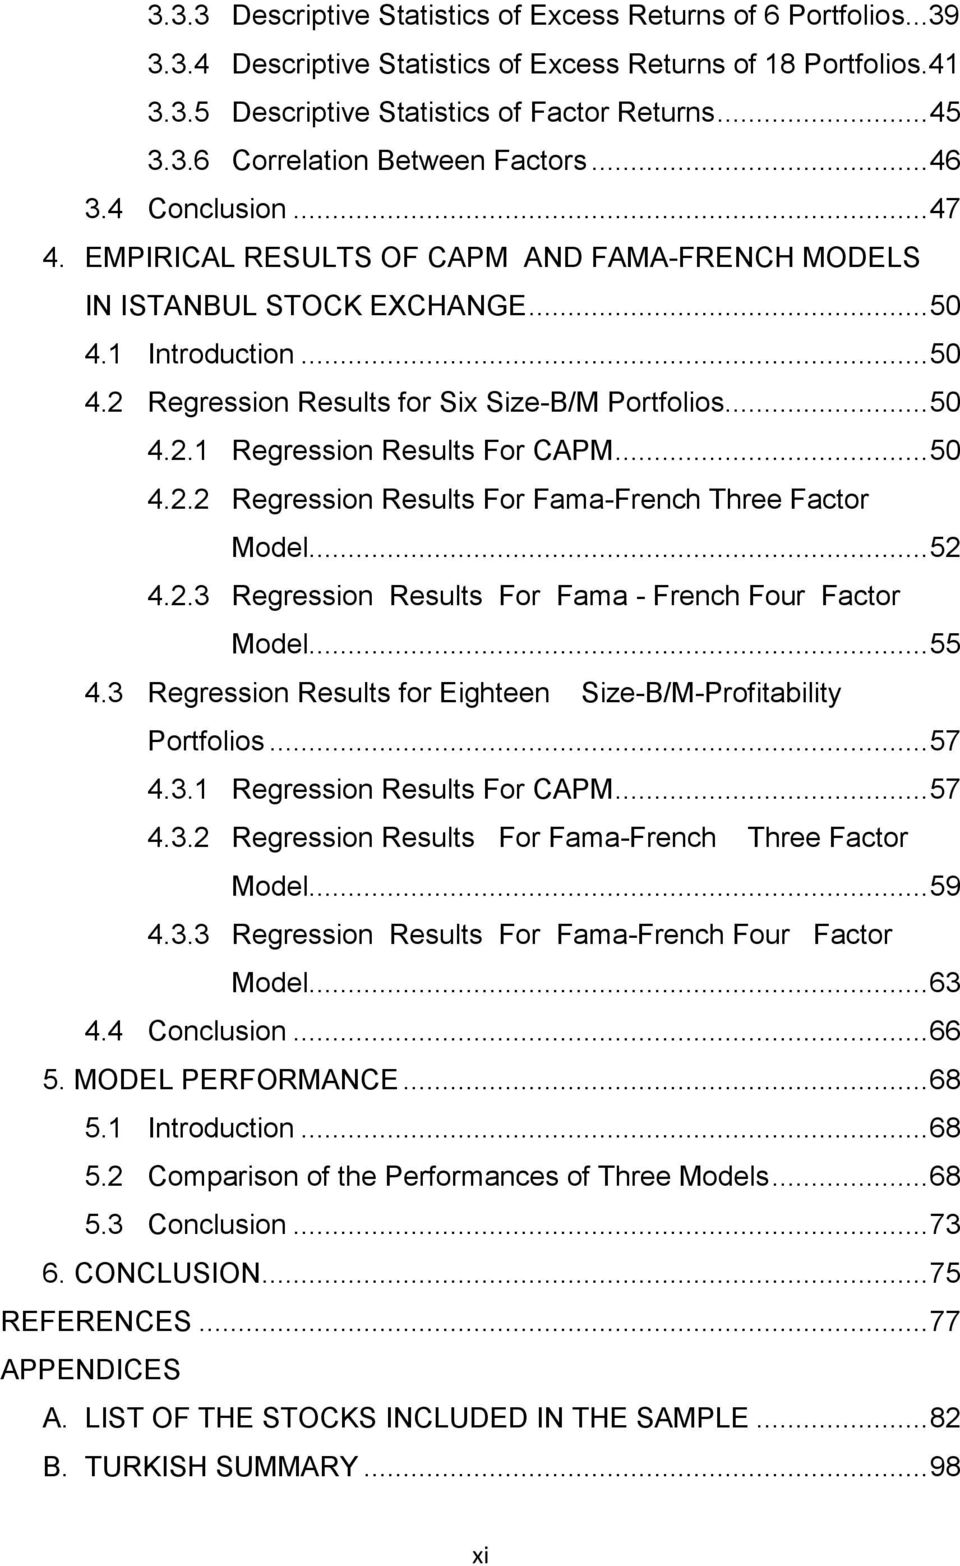 .. 50 4.2.2 Regression Results For Fama-French Three Factor Model... 52 4.2.3 Regression Results For Fama - French Four Factor Model... 55 4.